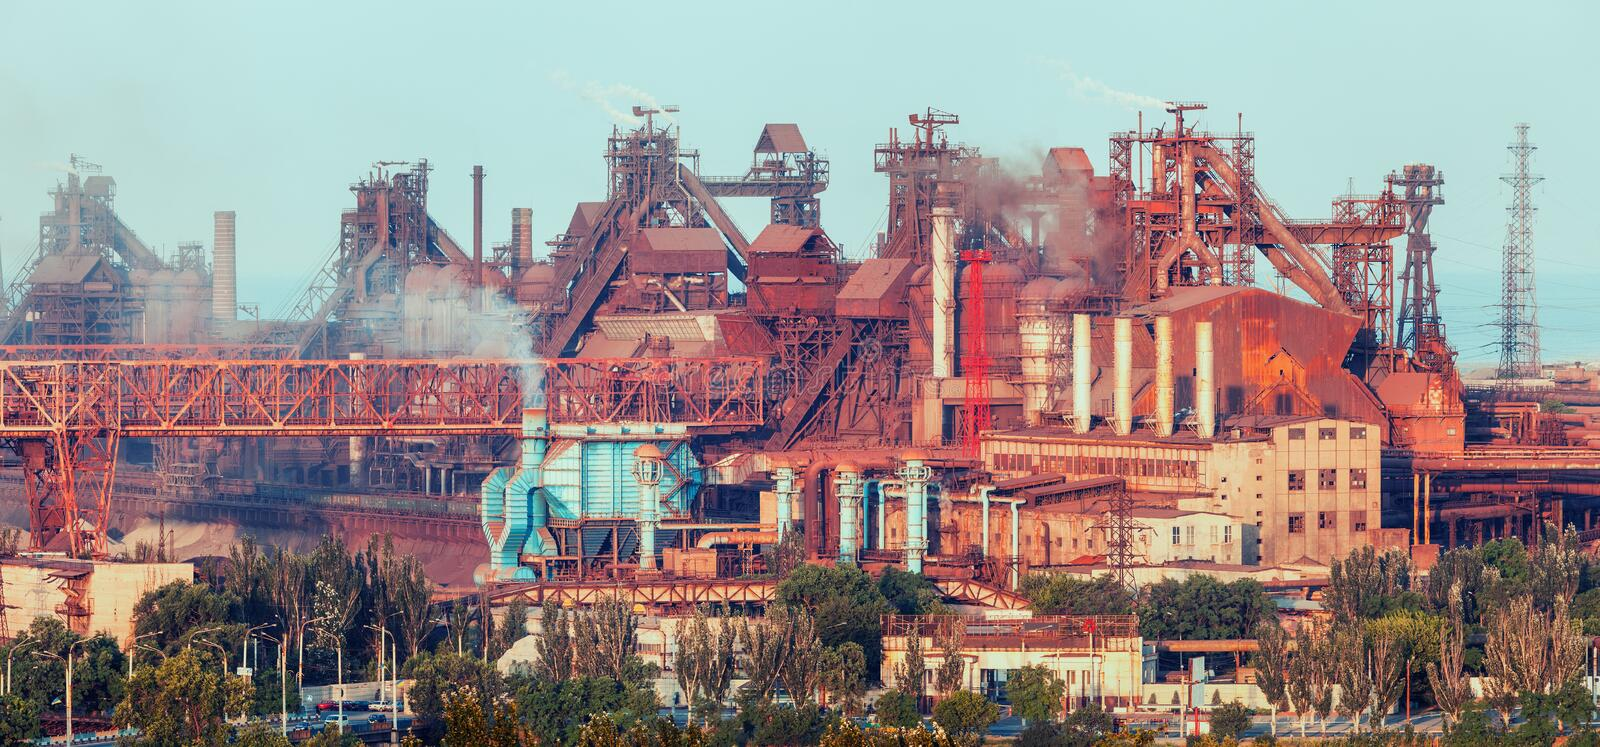 Industrial landscape. Steel factory. Heavy industry in Europe. Metallurgical plant. Industrial landscape. Steel factory at sunset. Pipes with smoke. steelworks royalty free stock photos